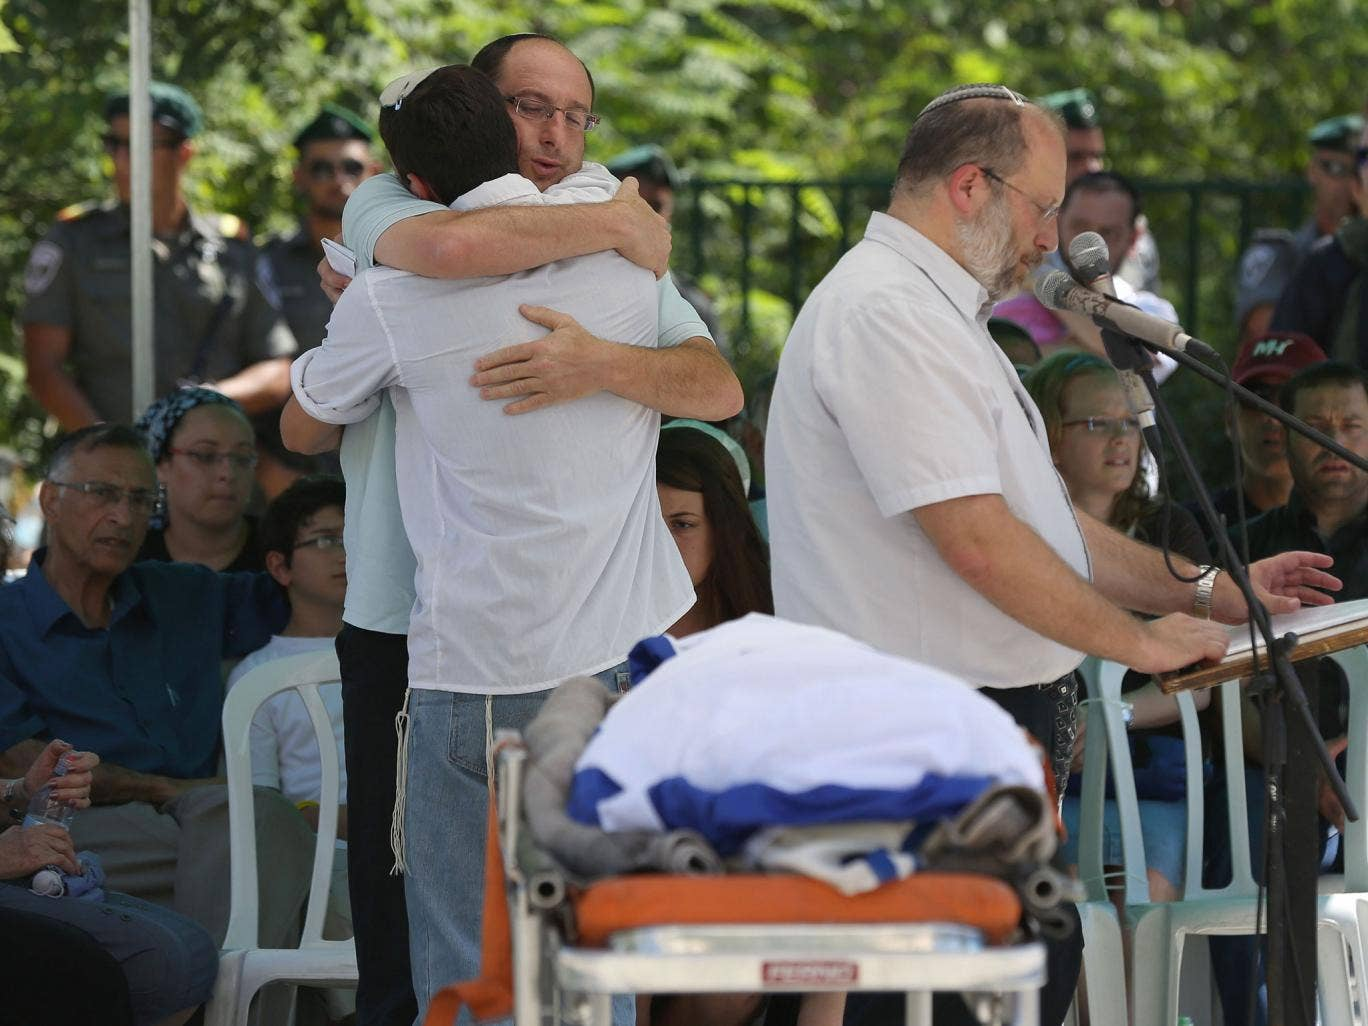 Ofir, the father of Gilad Shaer, 16, hugs a mourner as they stand in front of his son's body during a funeral service at his hometown, the Talmon Jewish settlement, near the West Bank city of Ramallah